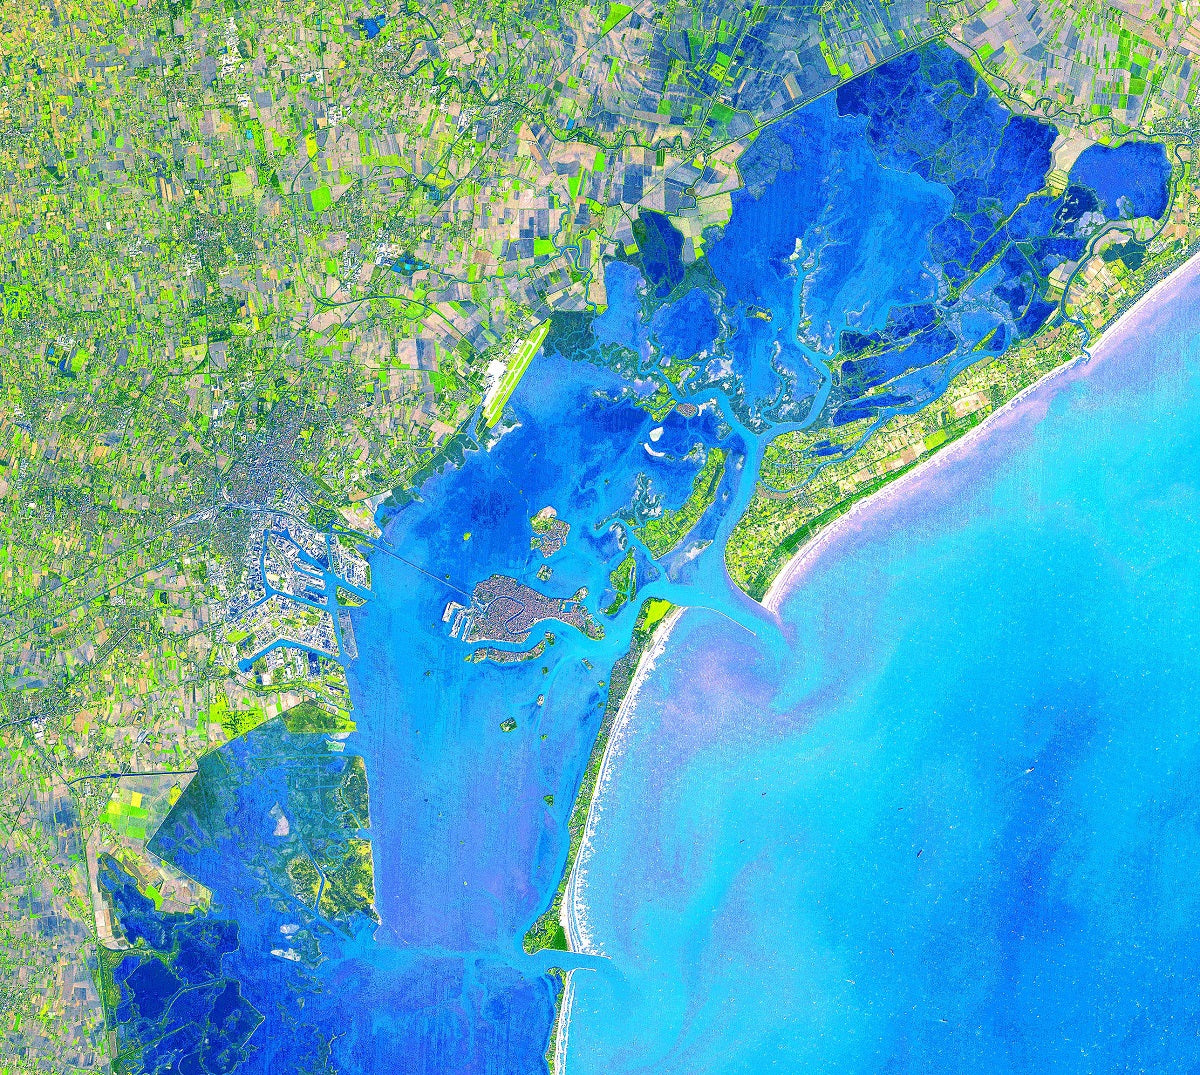 Venice NASA satellite image canals Italy